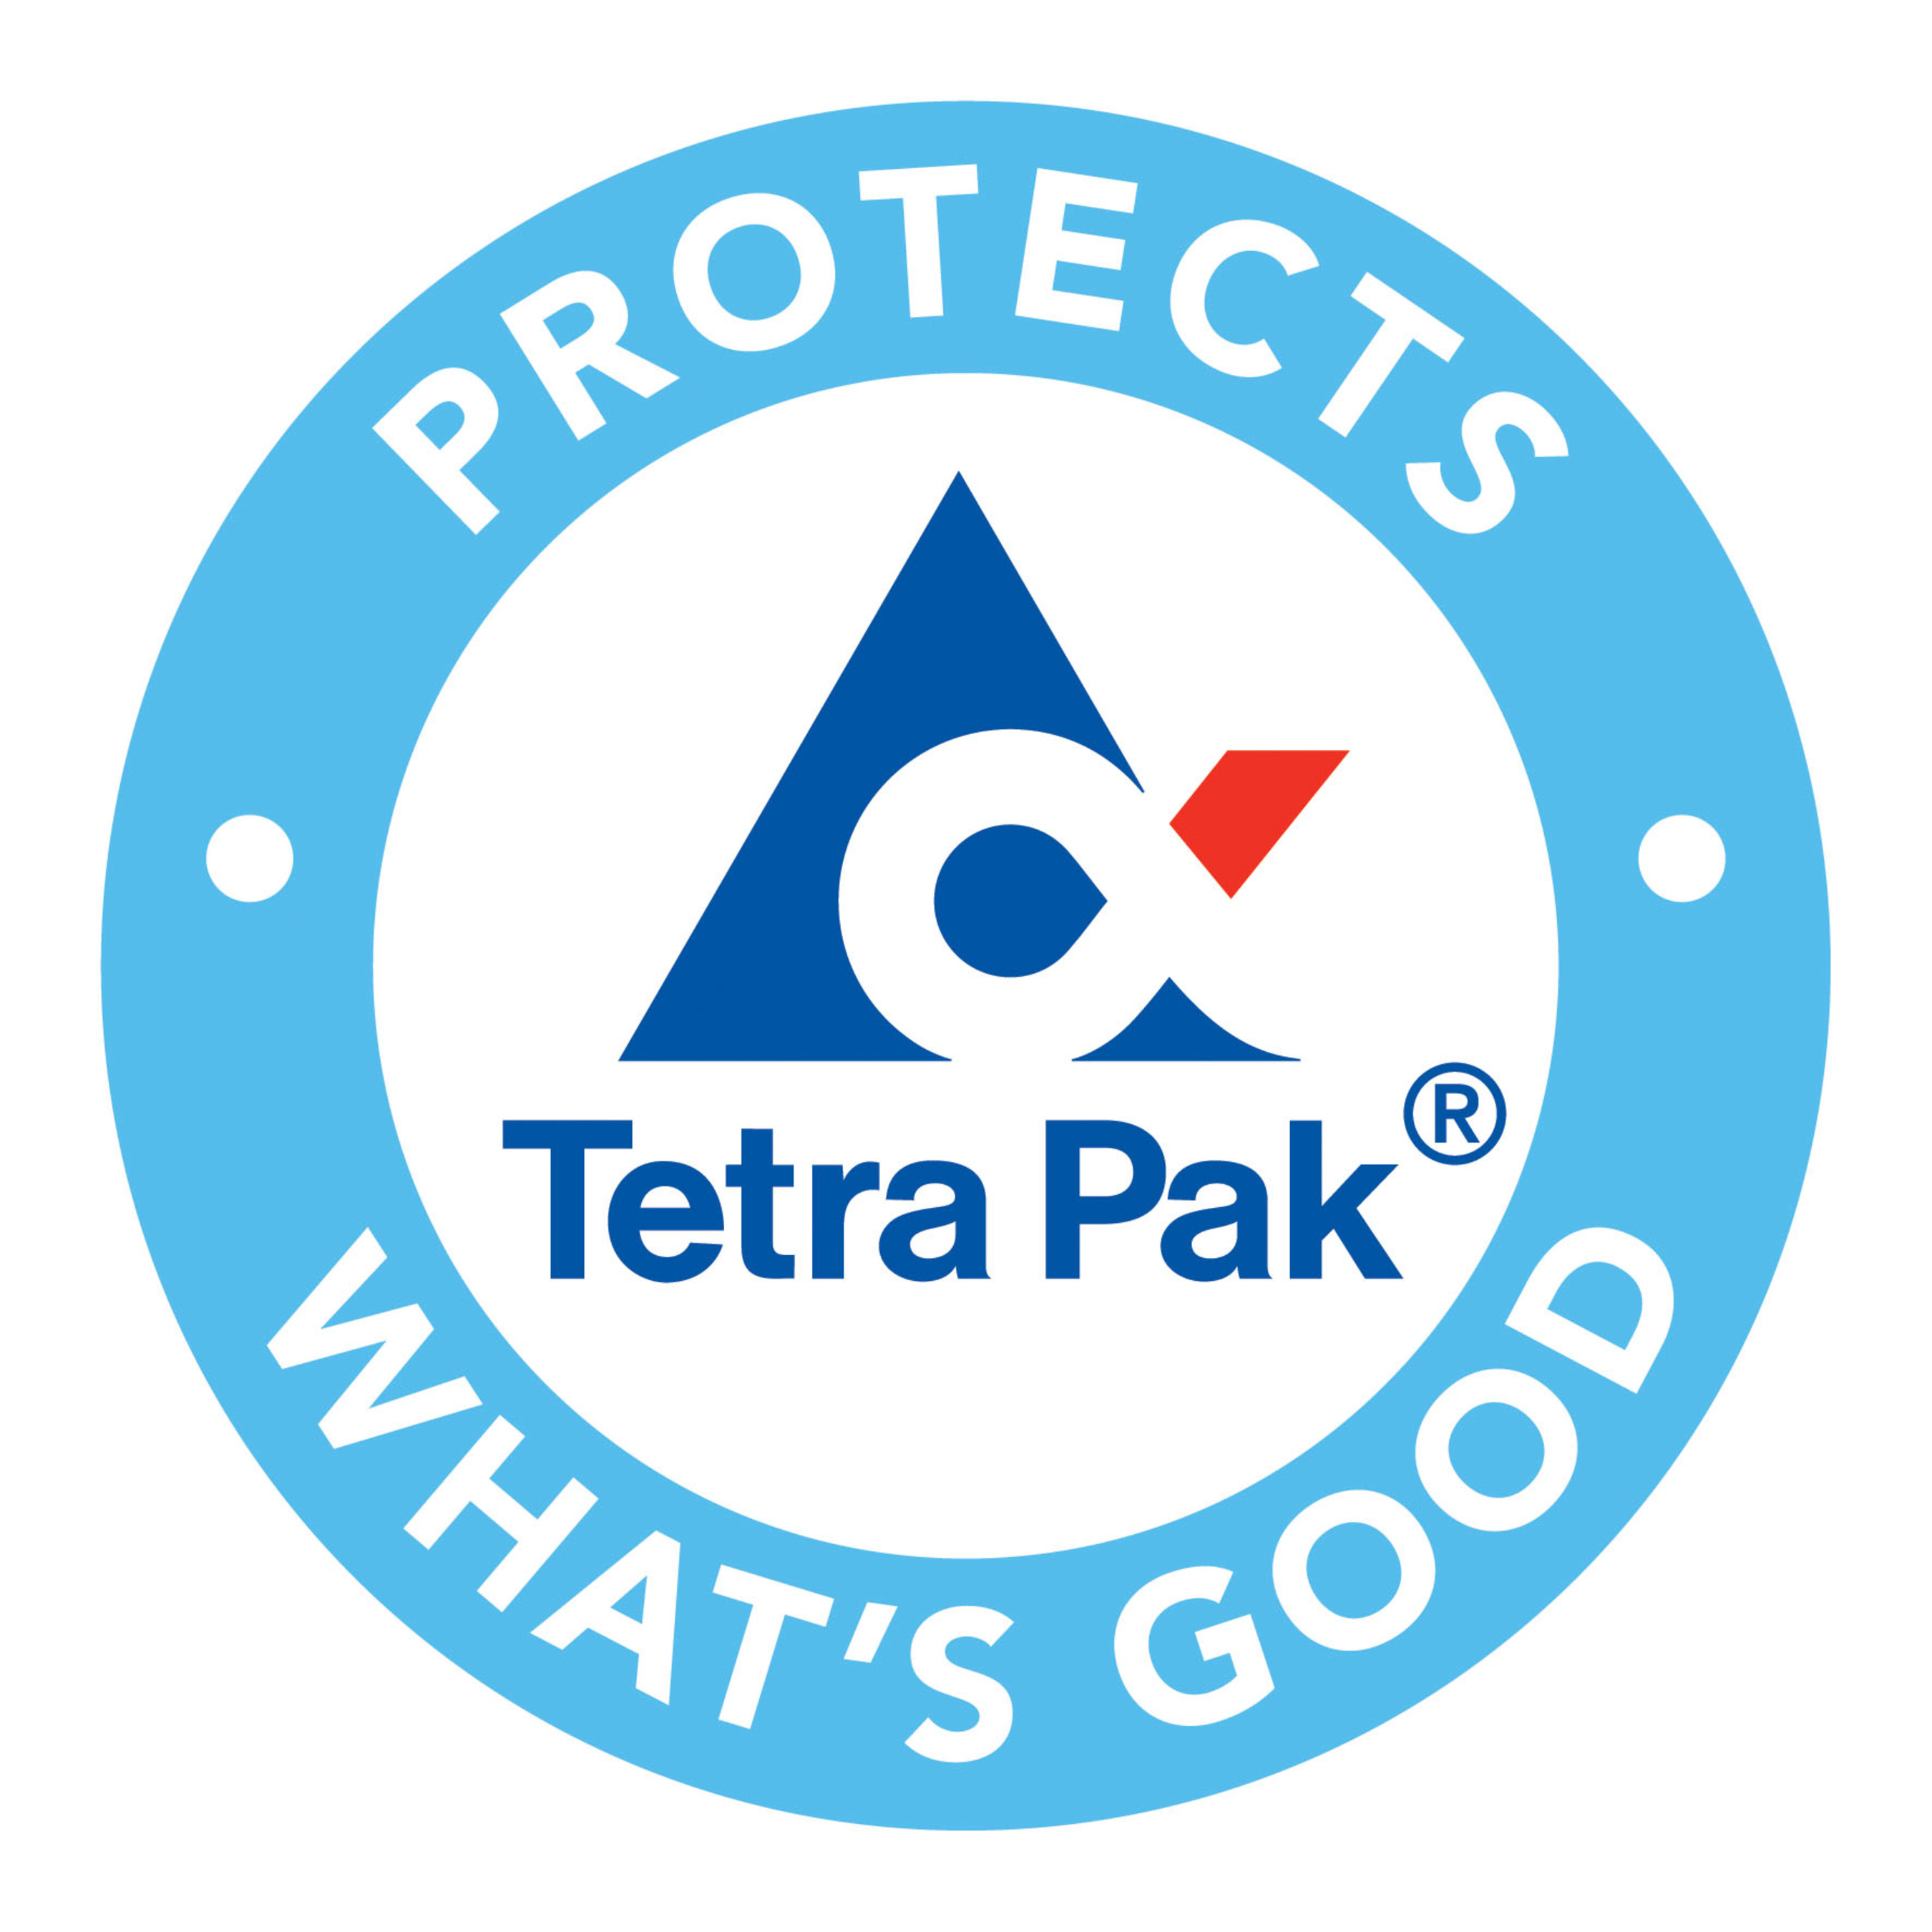 Tetra Pak is the world's leading food processing and packaging solutions company. Working closely with our ...